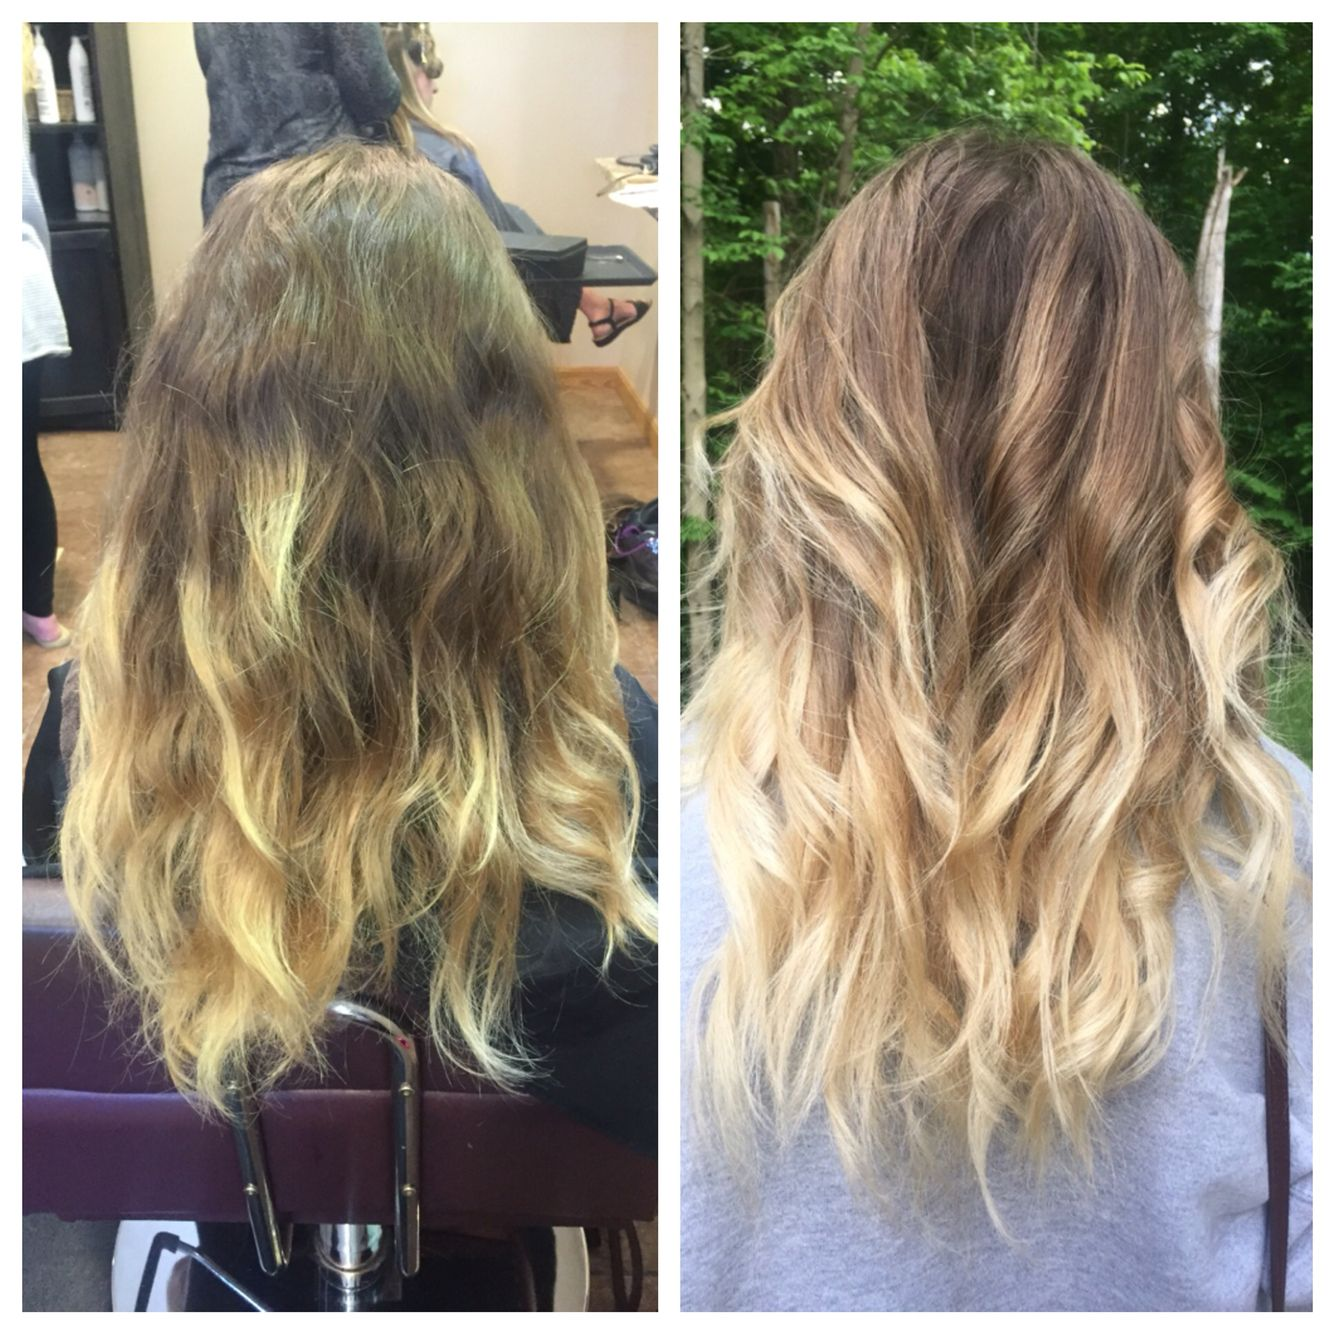 Alex S Ombre To Bayalage Aveda Lightener Used And Ash Toner To Get Rid Of The Gold Maggieheathcreations Aveda Color Long Hair Styles Hair Styles